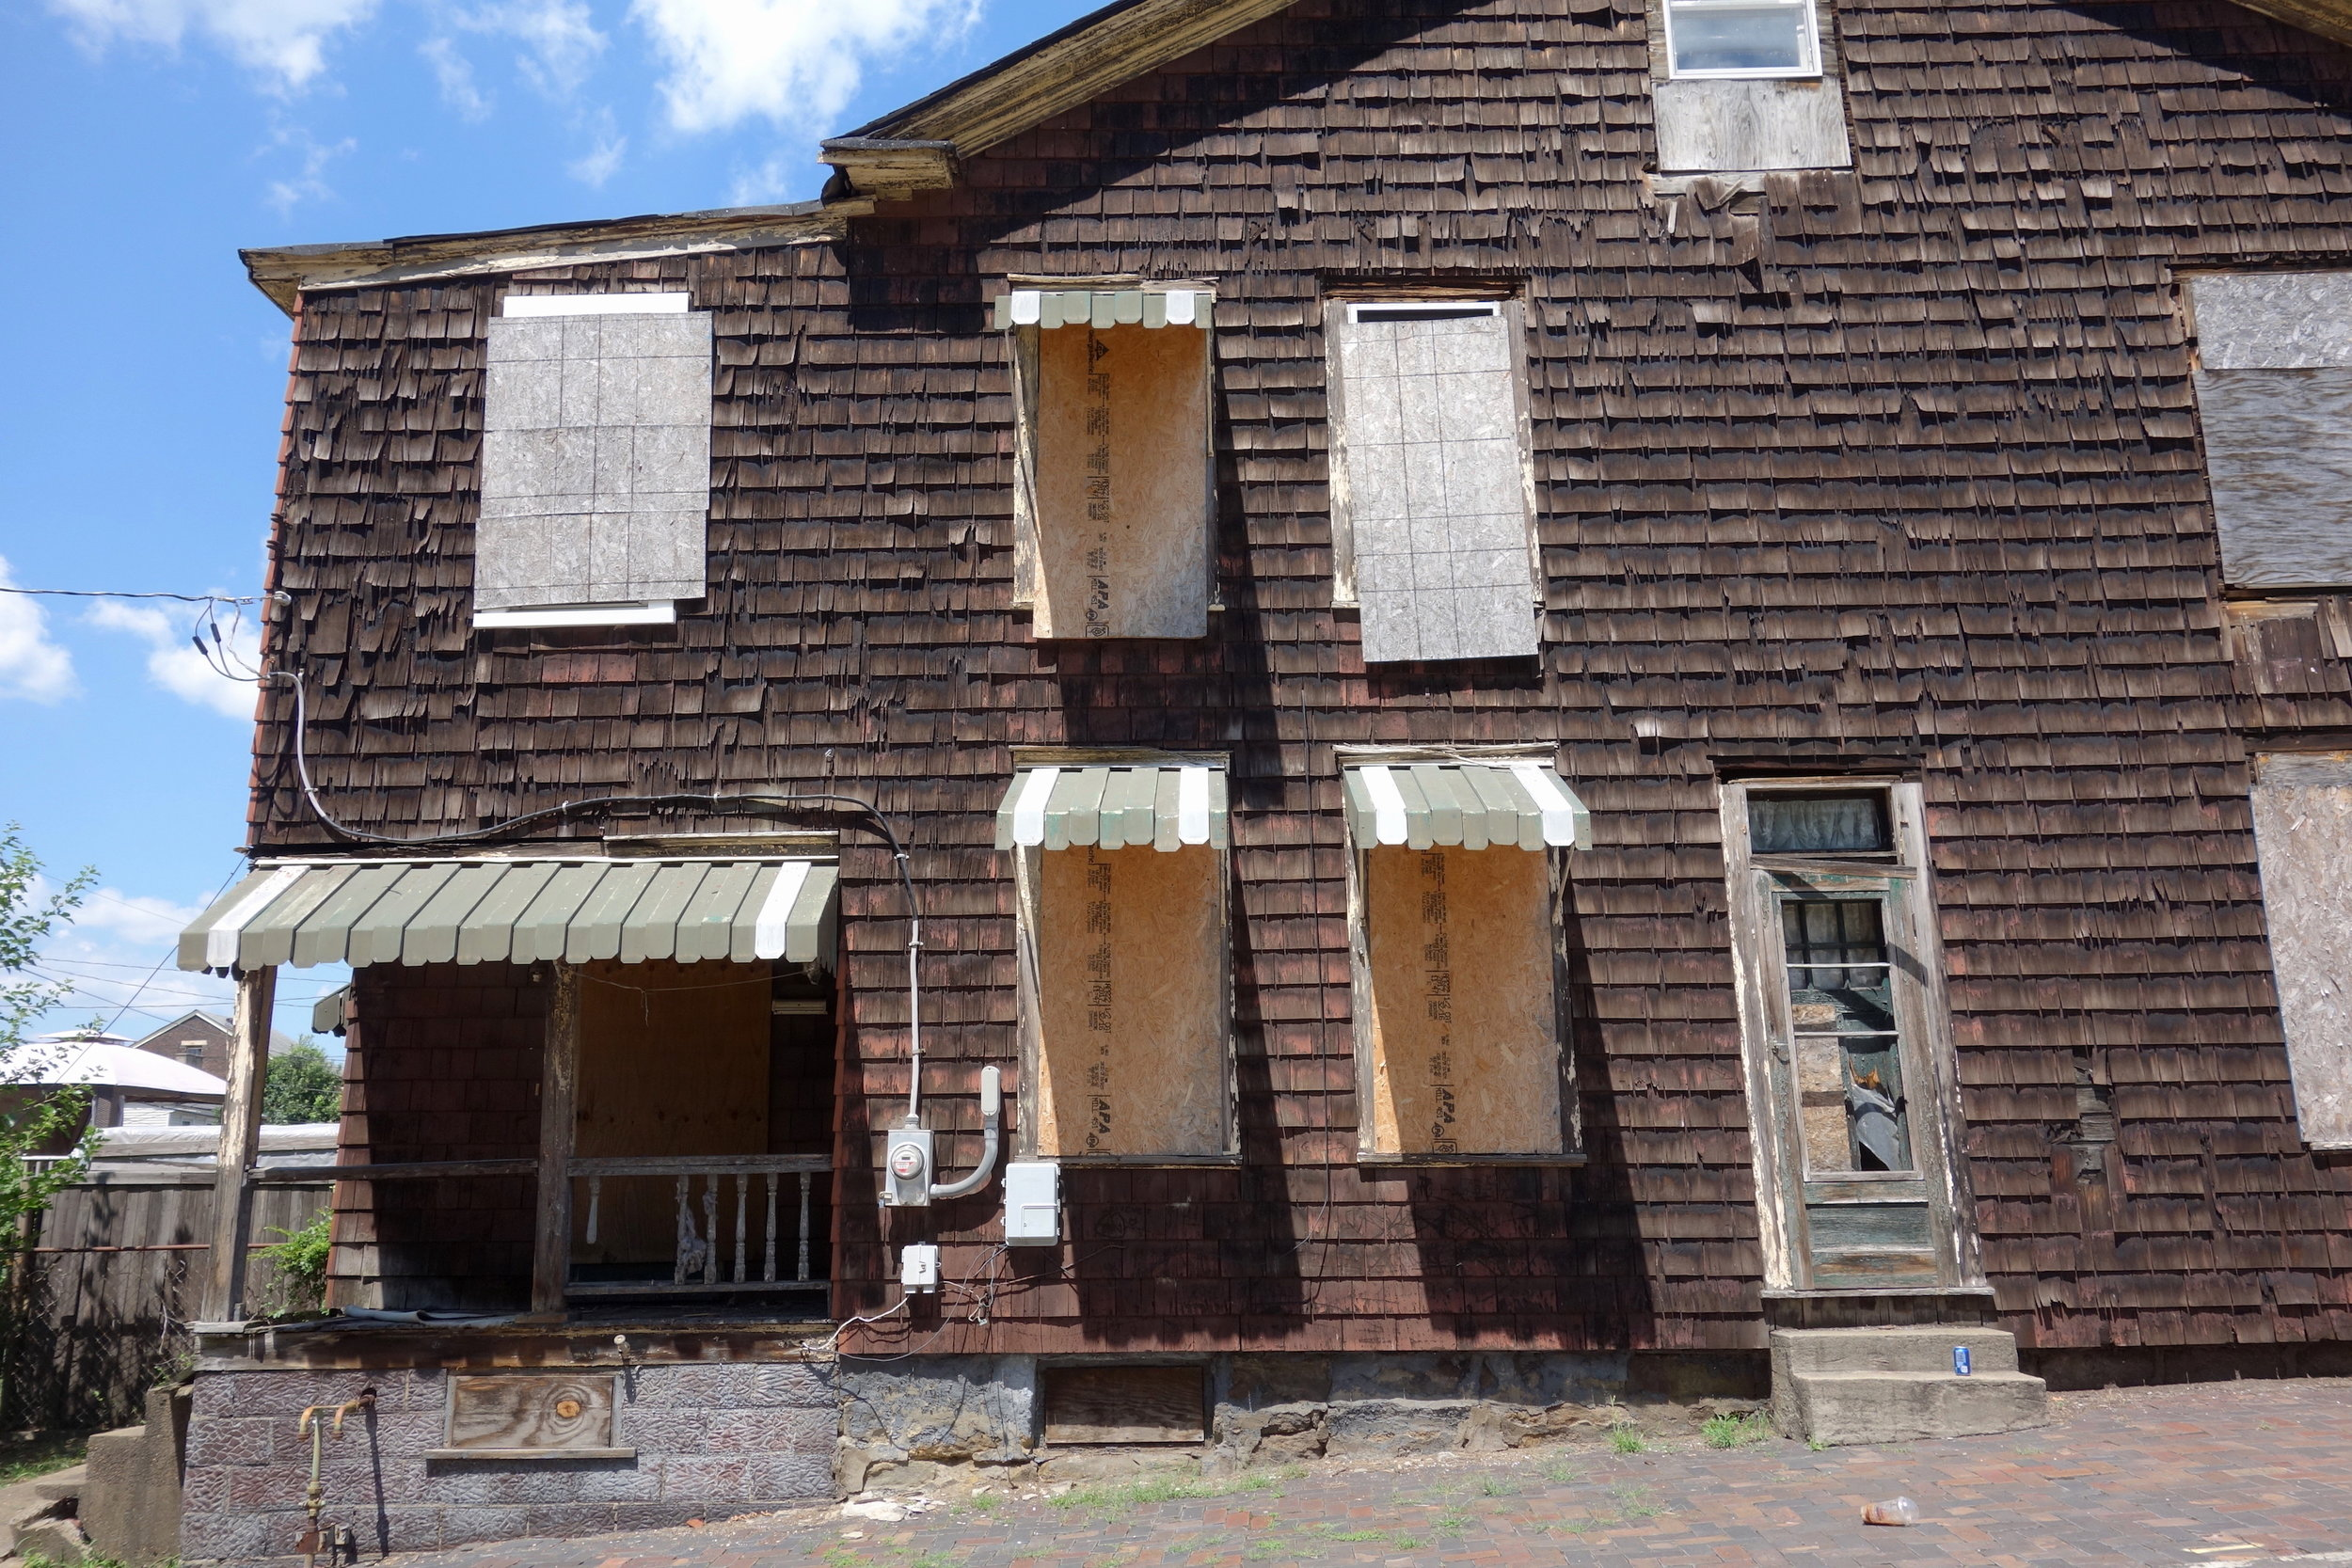 Figure 16. Boarded up house on 28th Street in South Wheeling, 2016. Photograph by Joseph Heathcott.